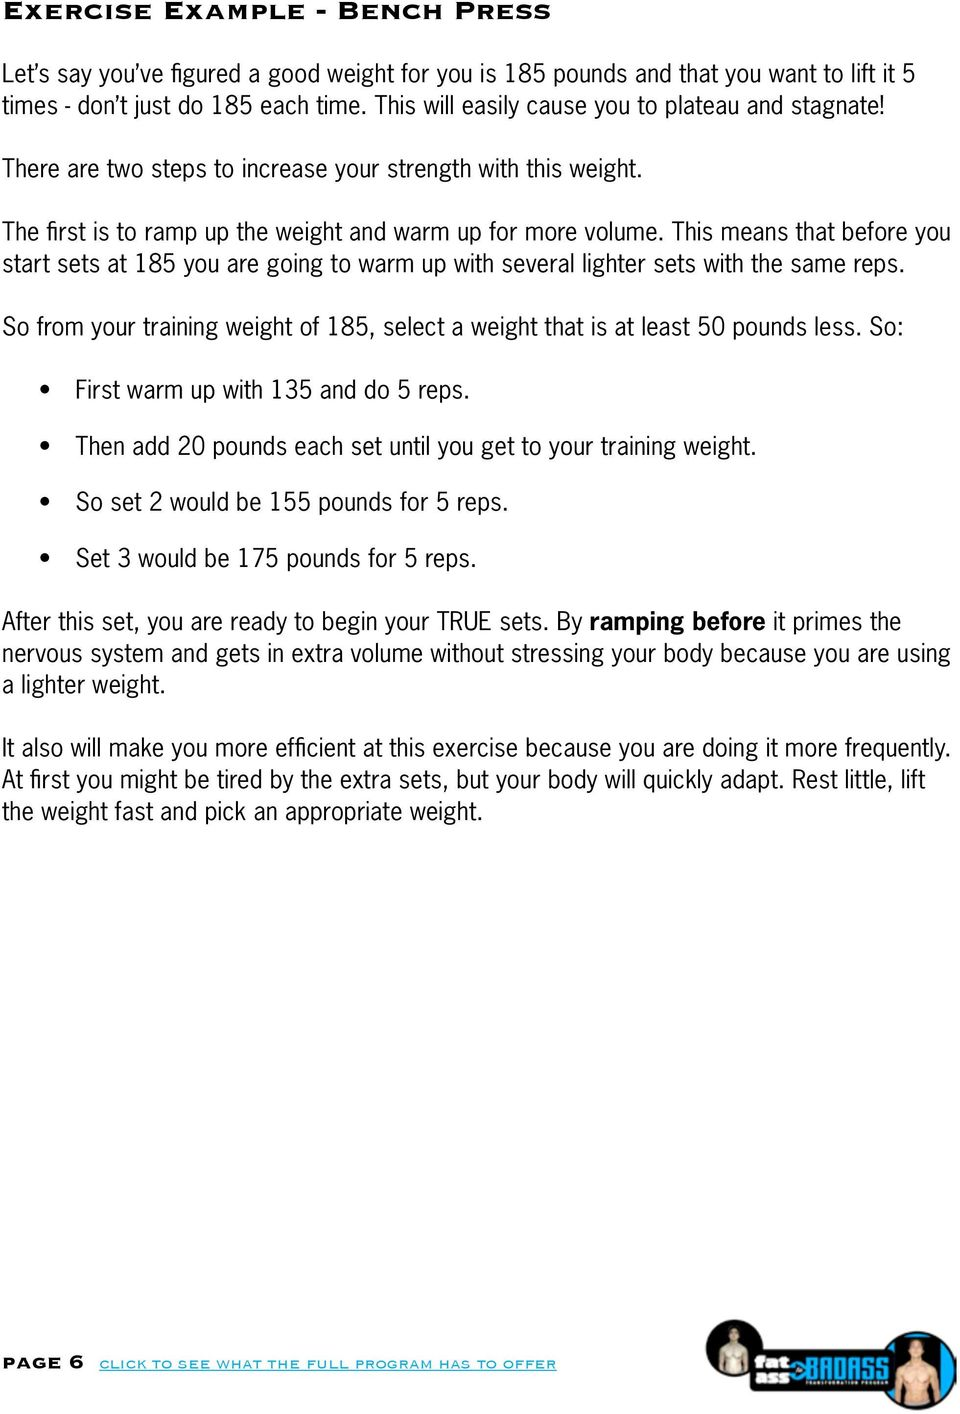 The Ultimate Guide for Fat Loss Success - PDF